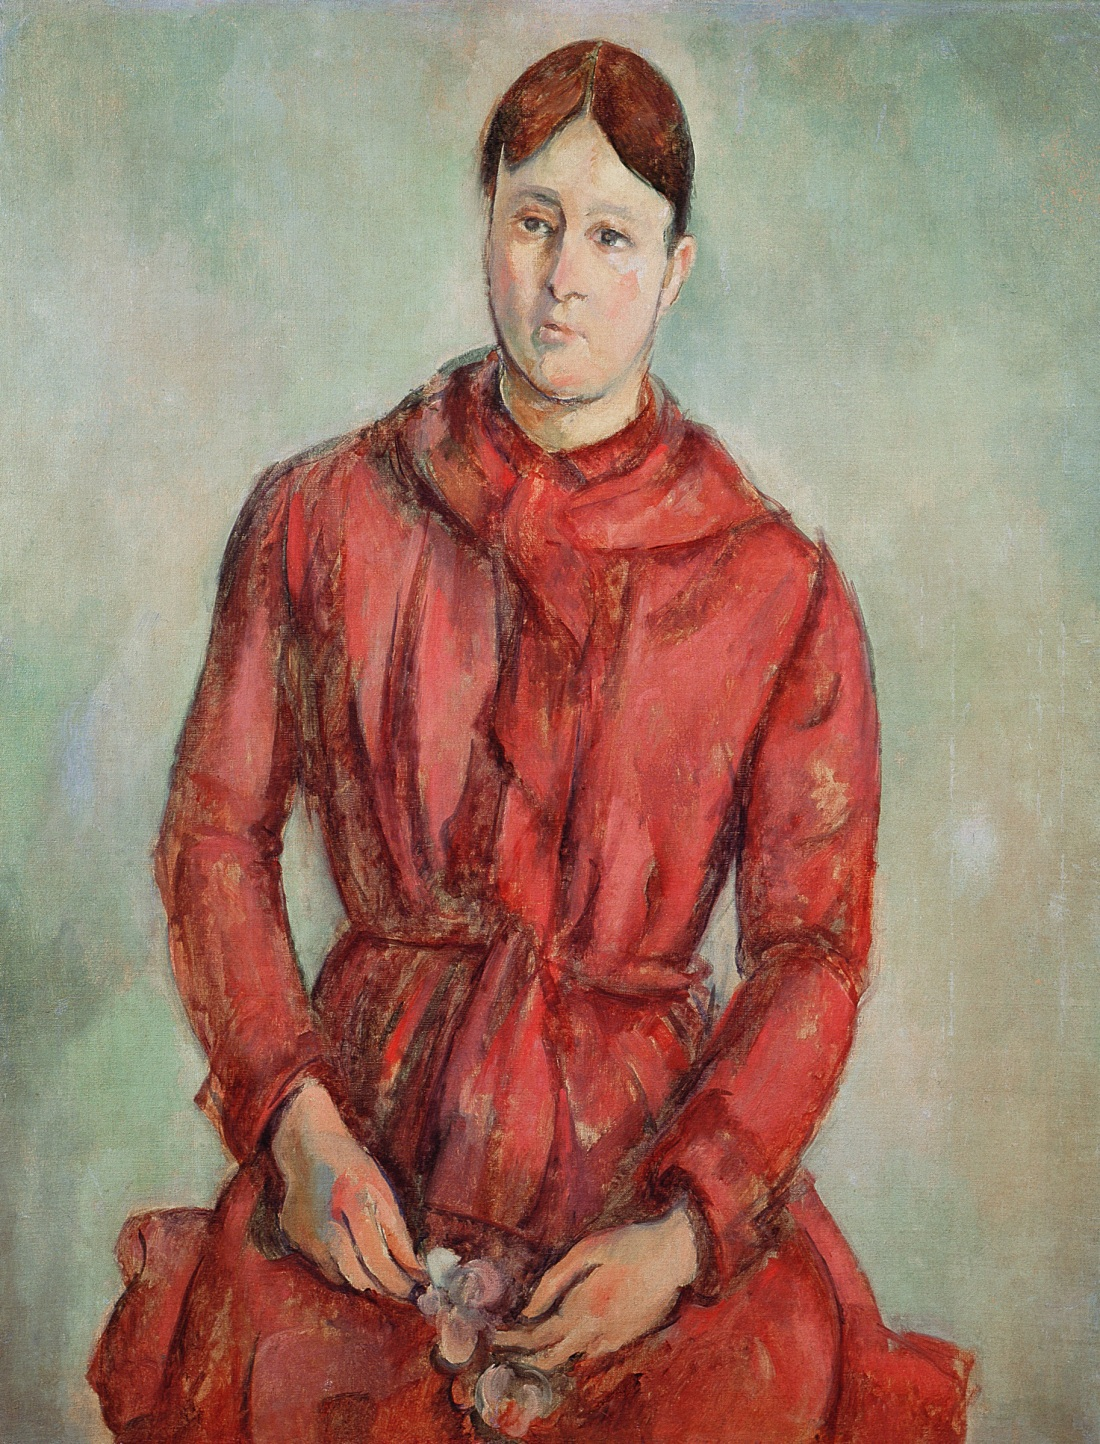 Paul Cezanne, Portrait of madame Cezanne in a Red Dress, ca. 1888-90, Collection of the Museu de Arte de Sao Paulo.